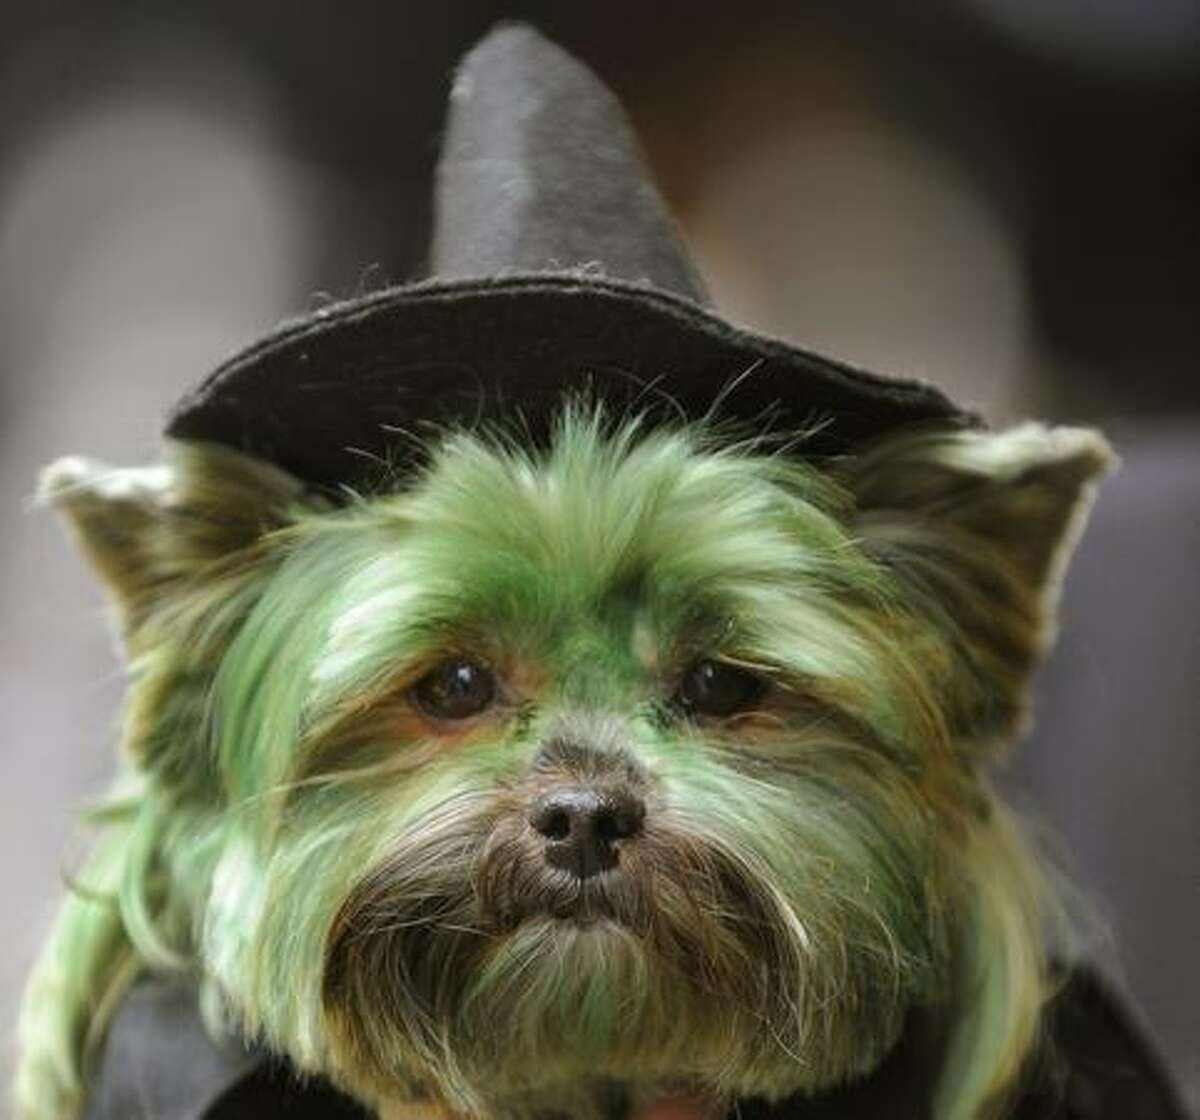 Petey, the Yorkshire Terrier dressed as